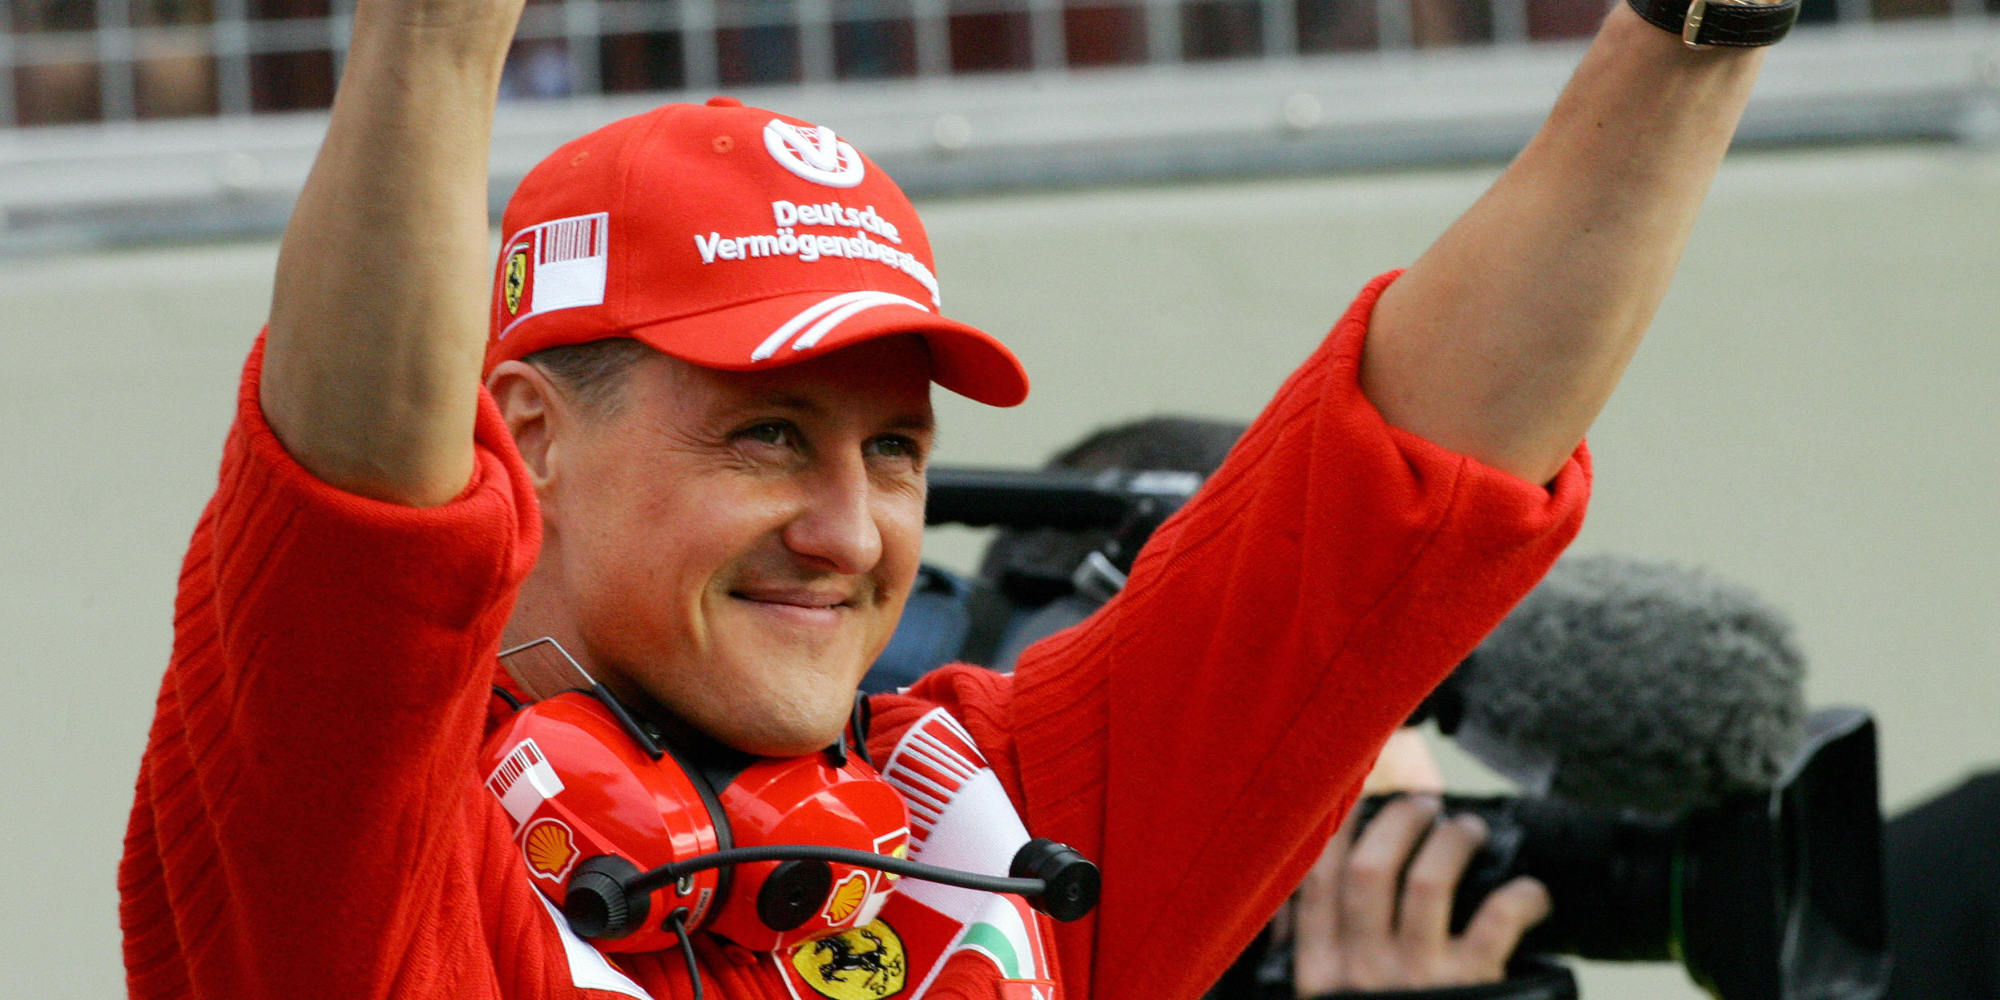 michael schumacher - photo #4